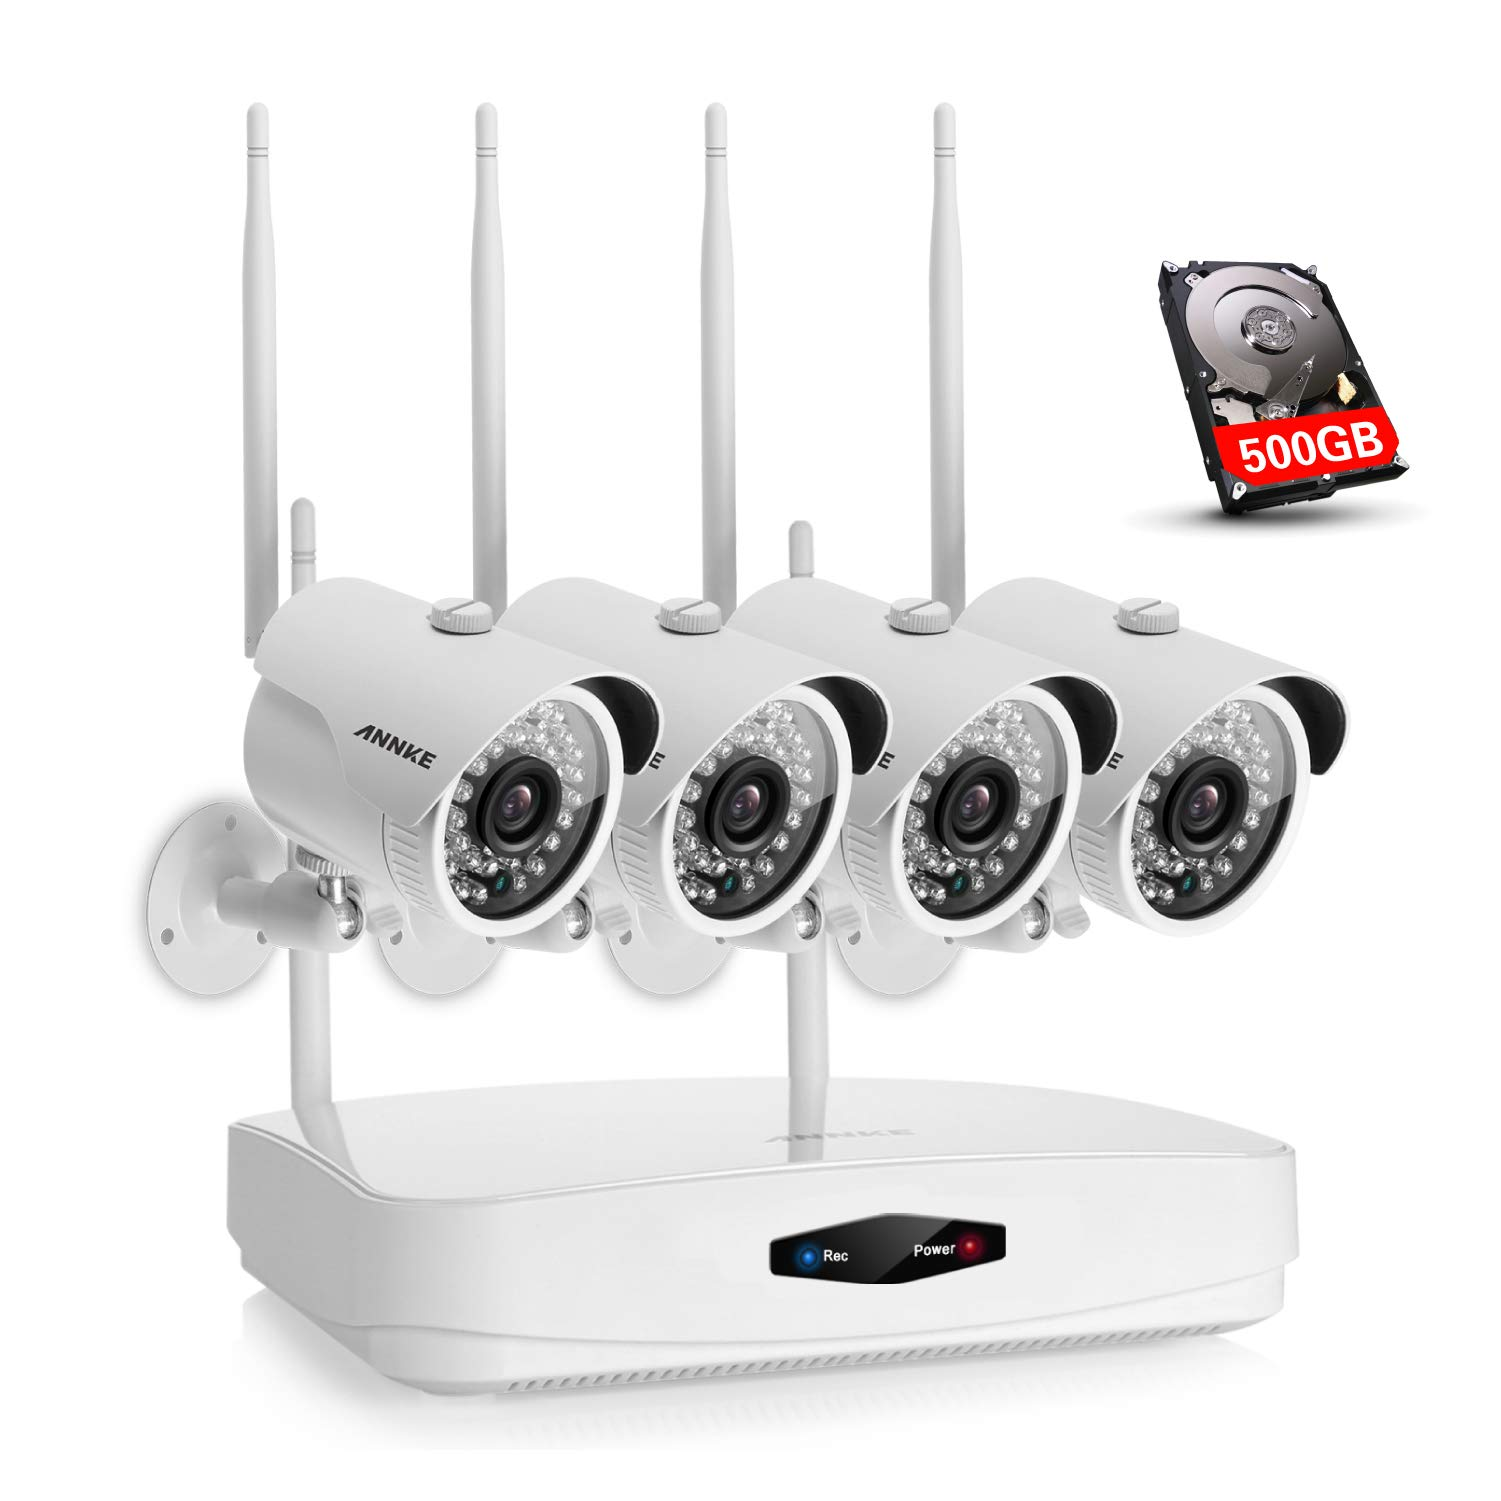 ANNKE 4CH 960p NVR with 500GB HDD Pre-Installed and (4) 1.0MP Wireless Security Cameras, 720p Smart Outdoor IP Cameras with 100ft Night Vision, IP66 Weatherproof